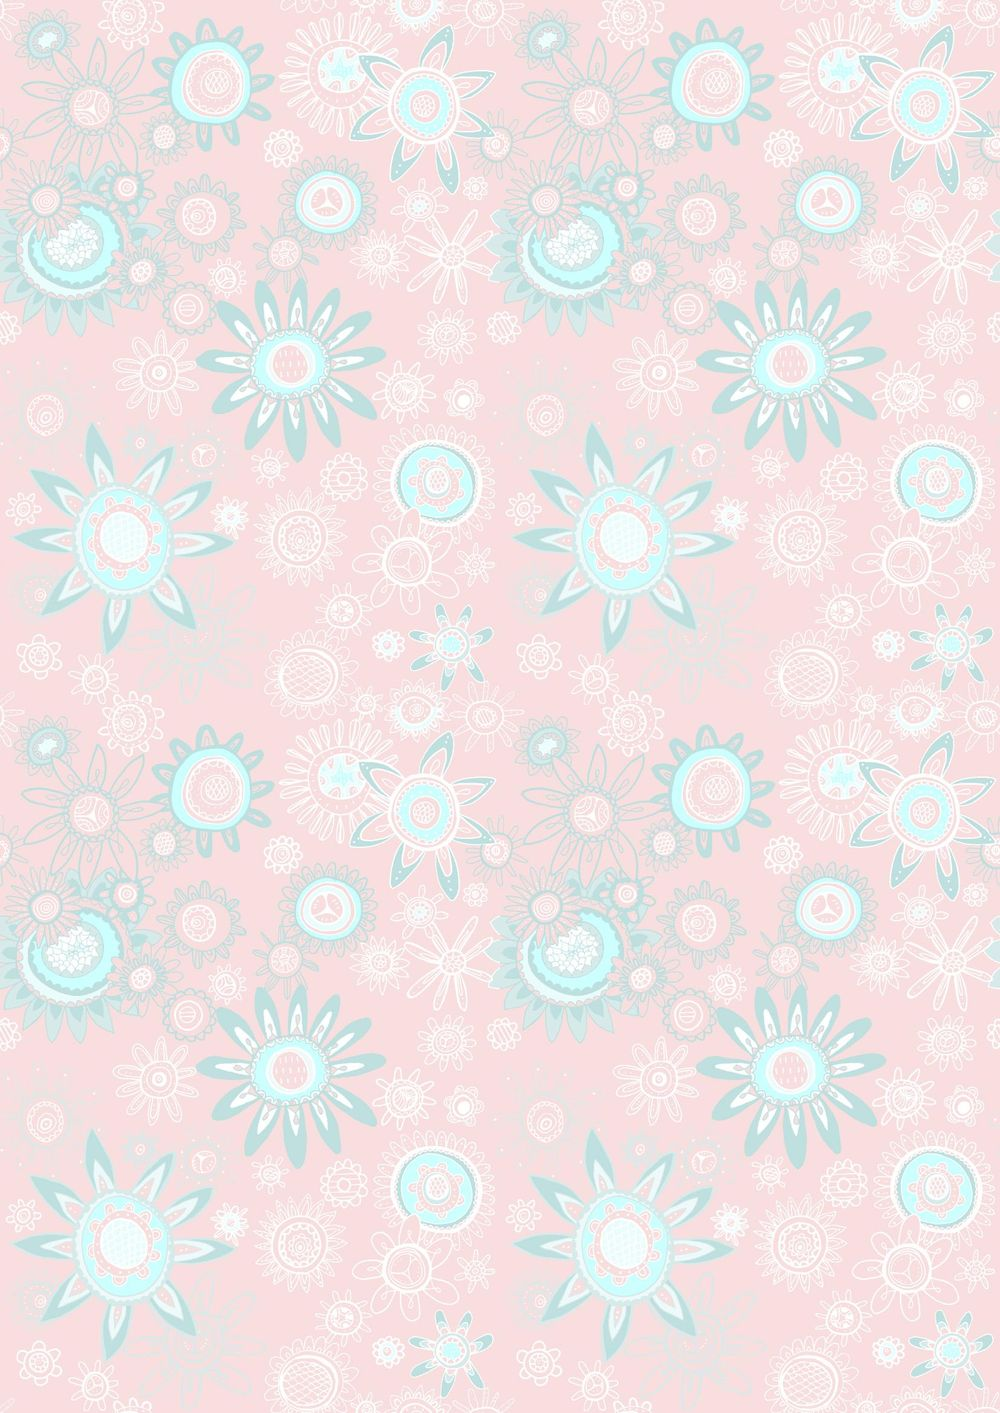 Floral flurry - image 2 - student project